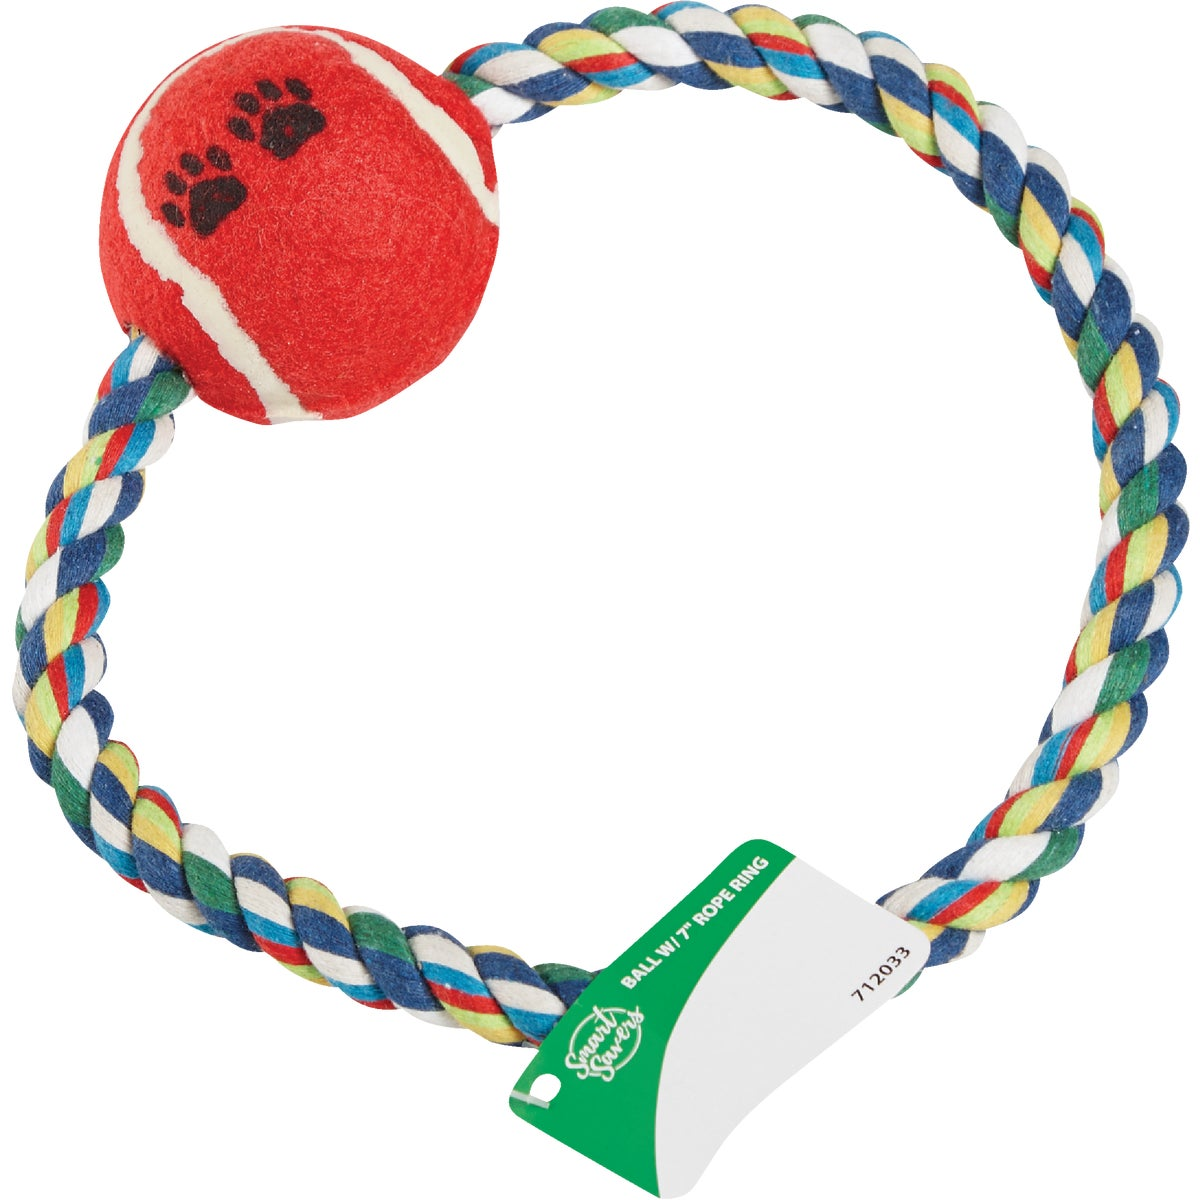 "BALL W/ 7"" ROPE RING - CC401029 by Do it Best"